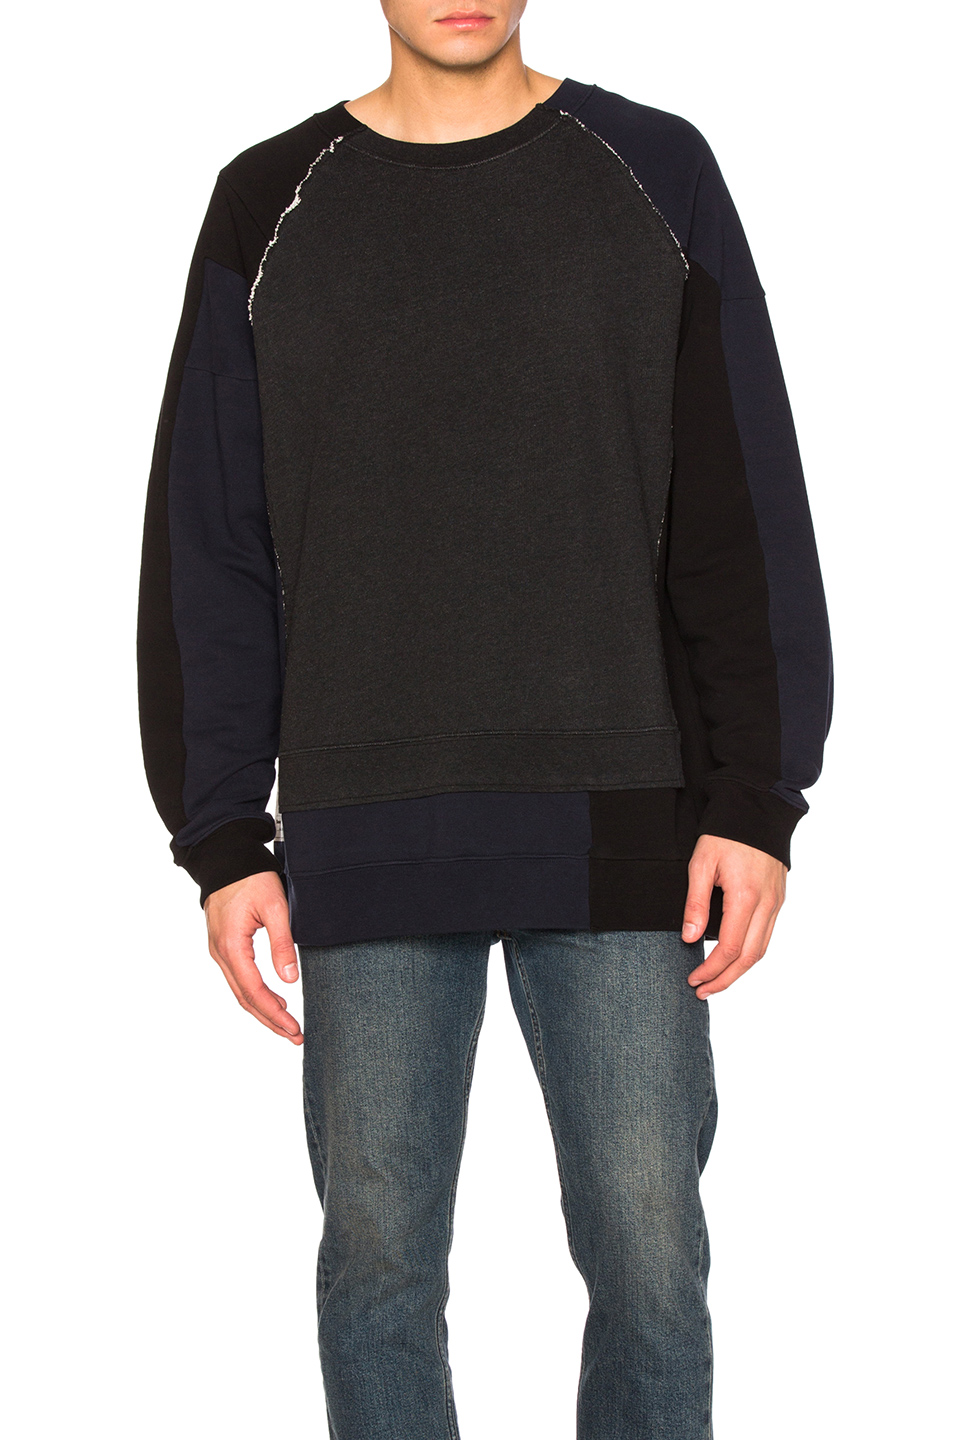 Maison Margiela Patchwork Sweatshirt in Gray